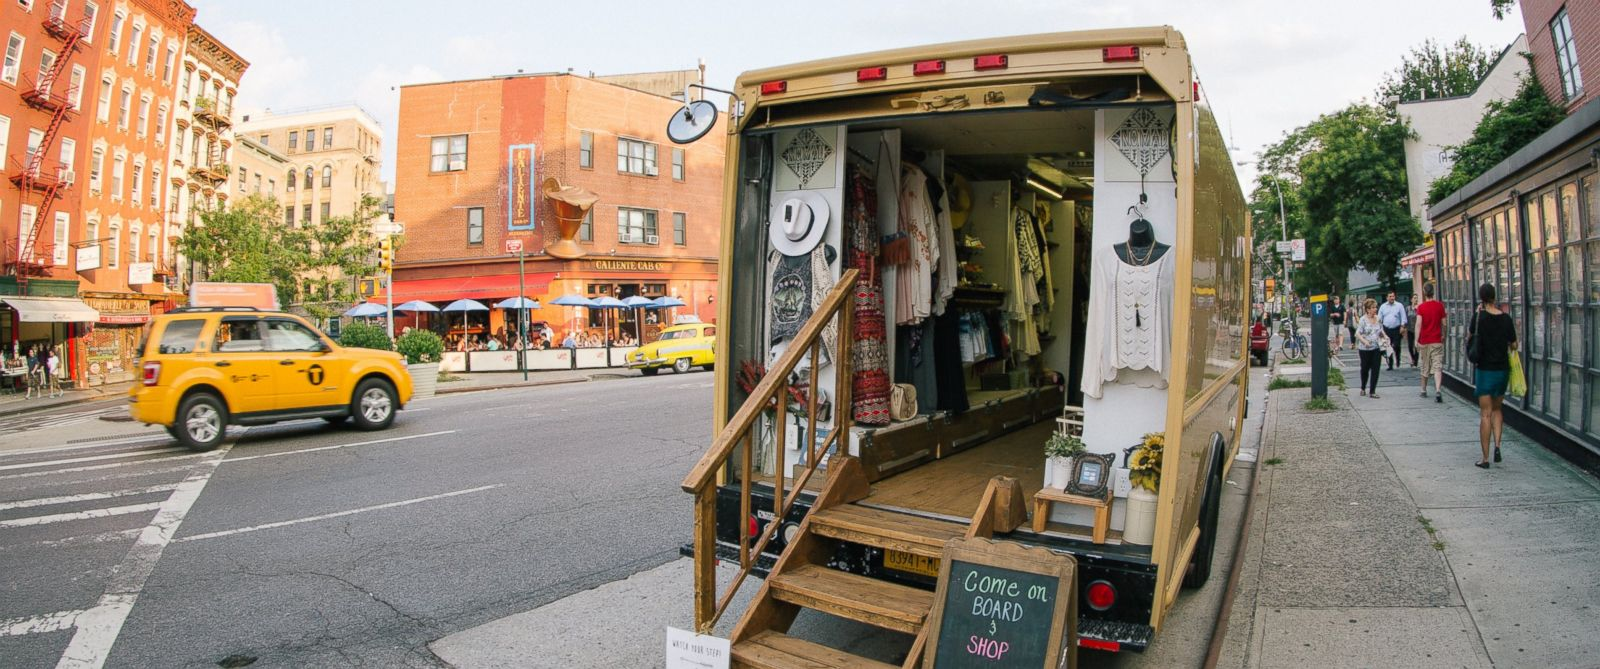 PHOTO: The Nomad fashion truck parks on NYC streets selling bohemian-style clothing for under $100.